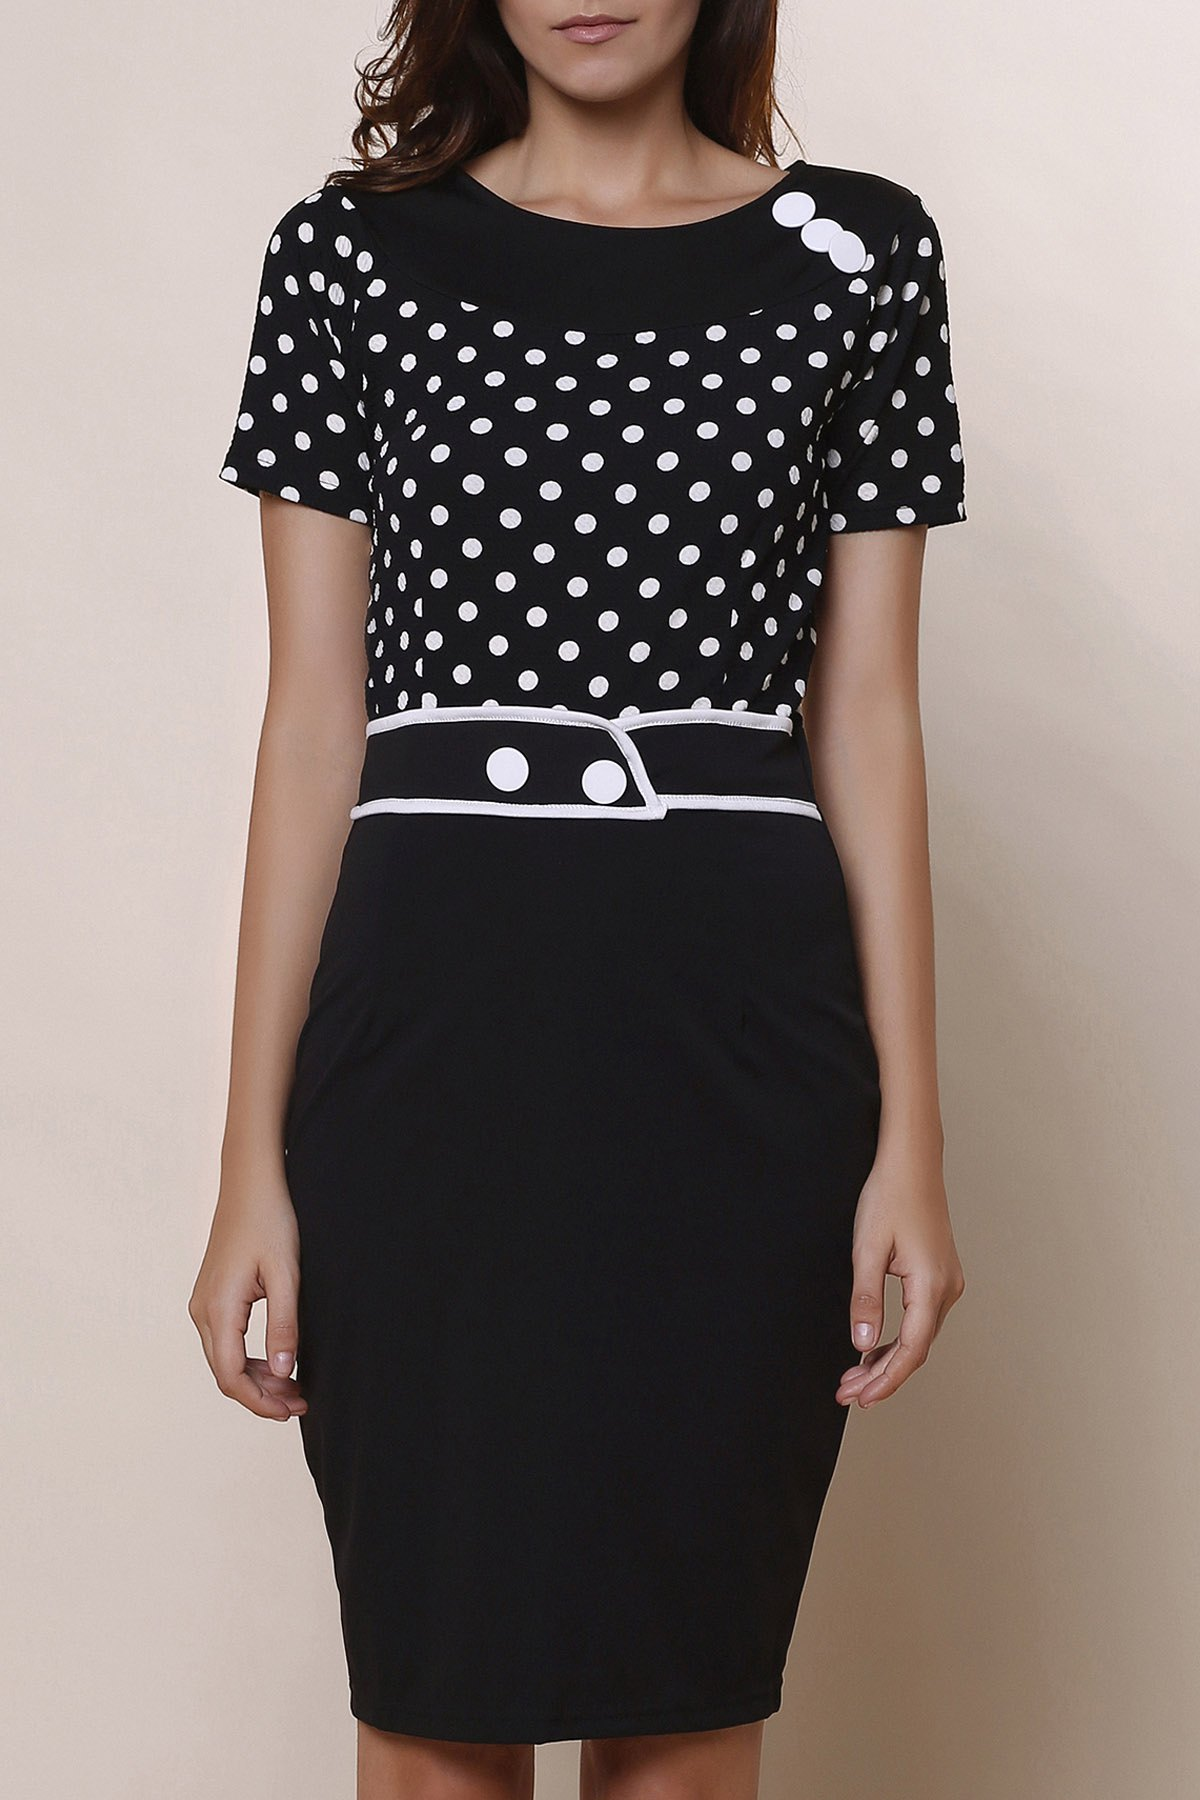 Stylish Scoop Neck Short Sleeve Slimming Polka Dot Women's Dress - BLACK S